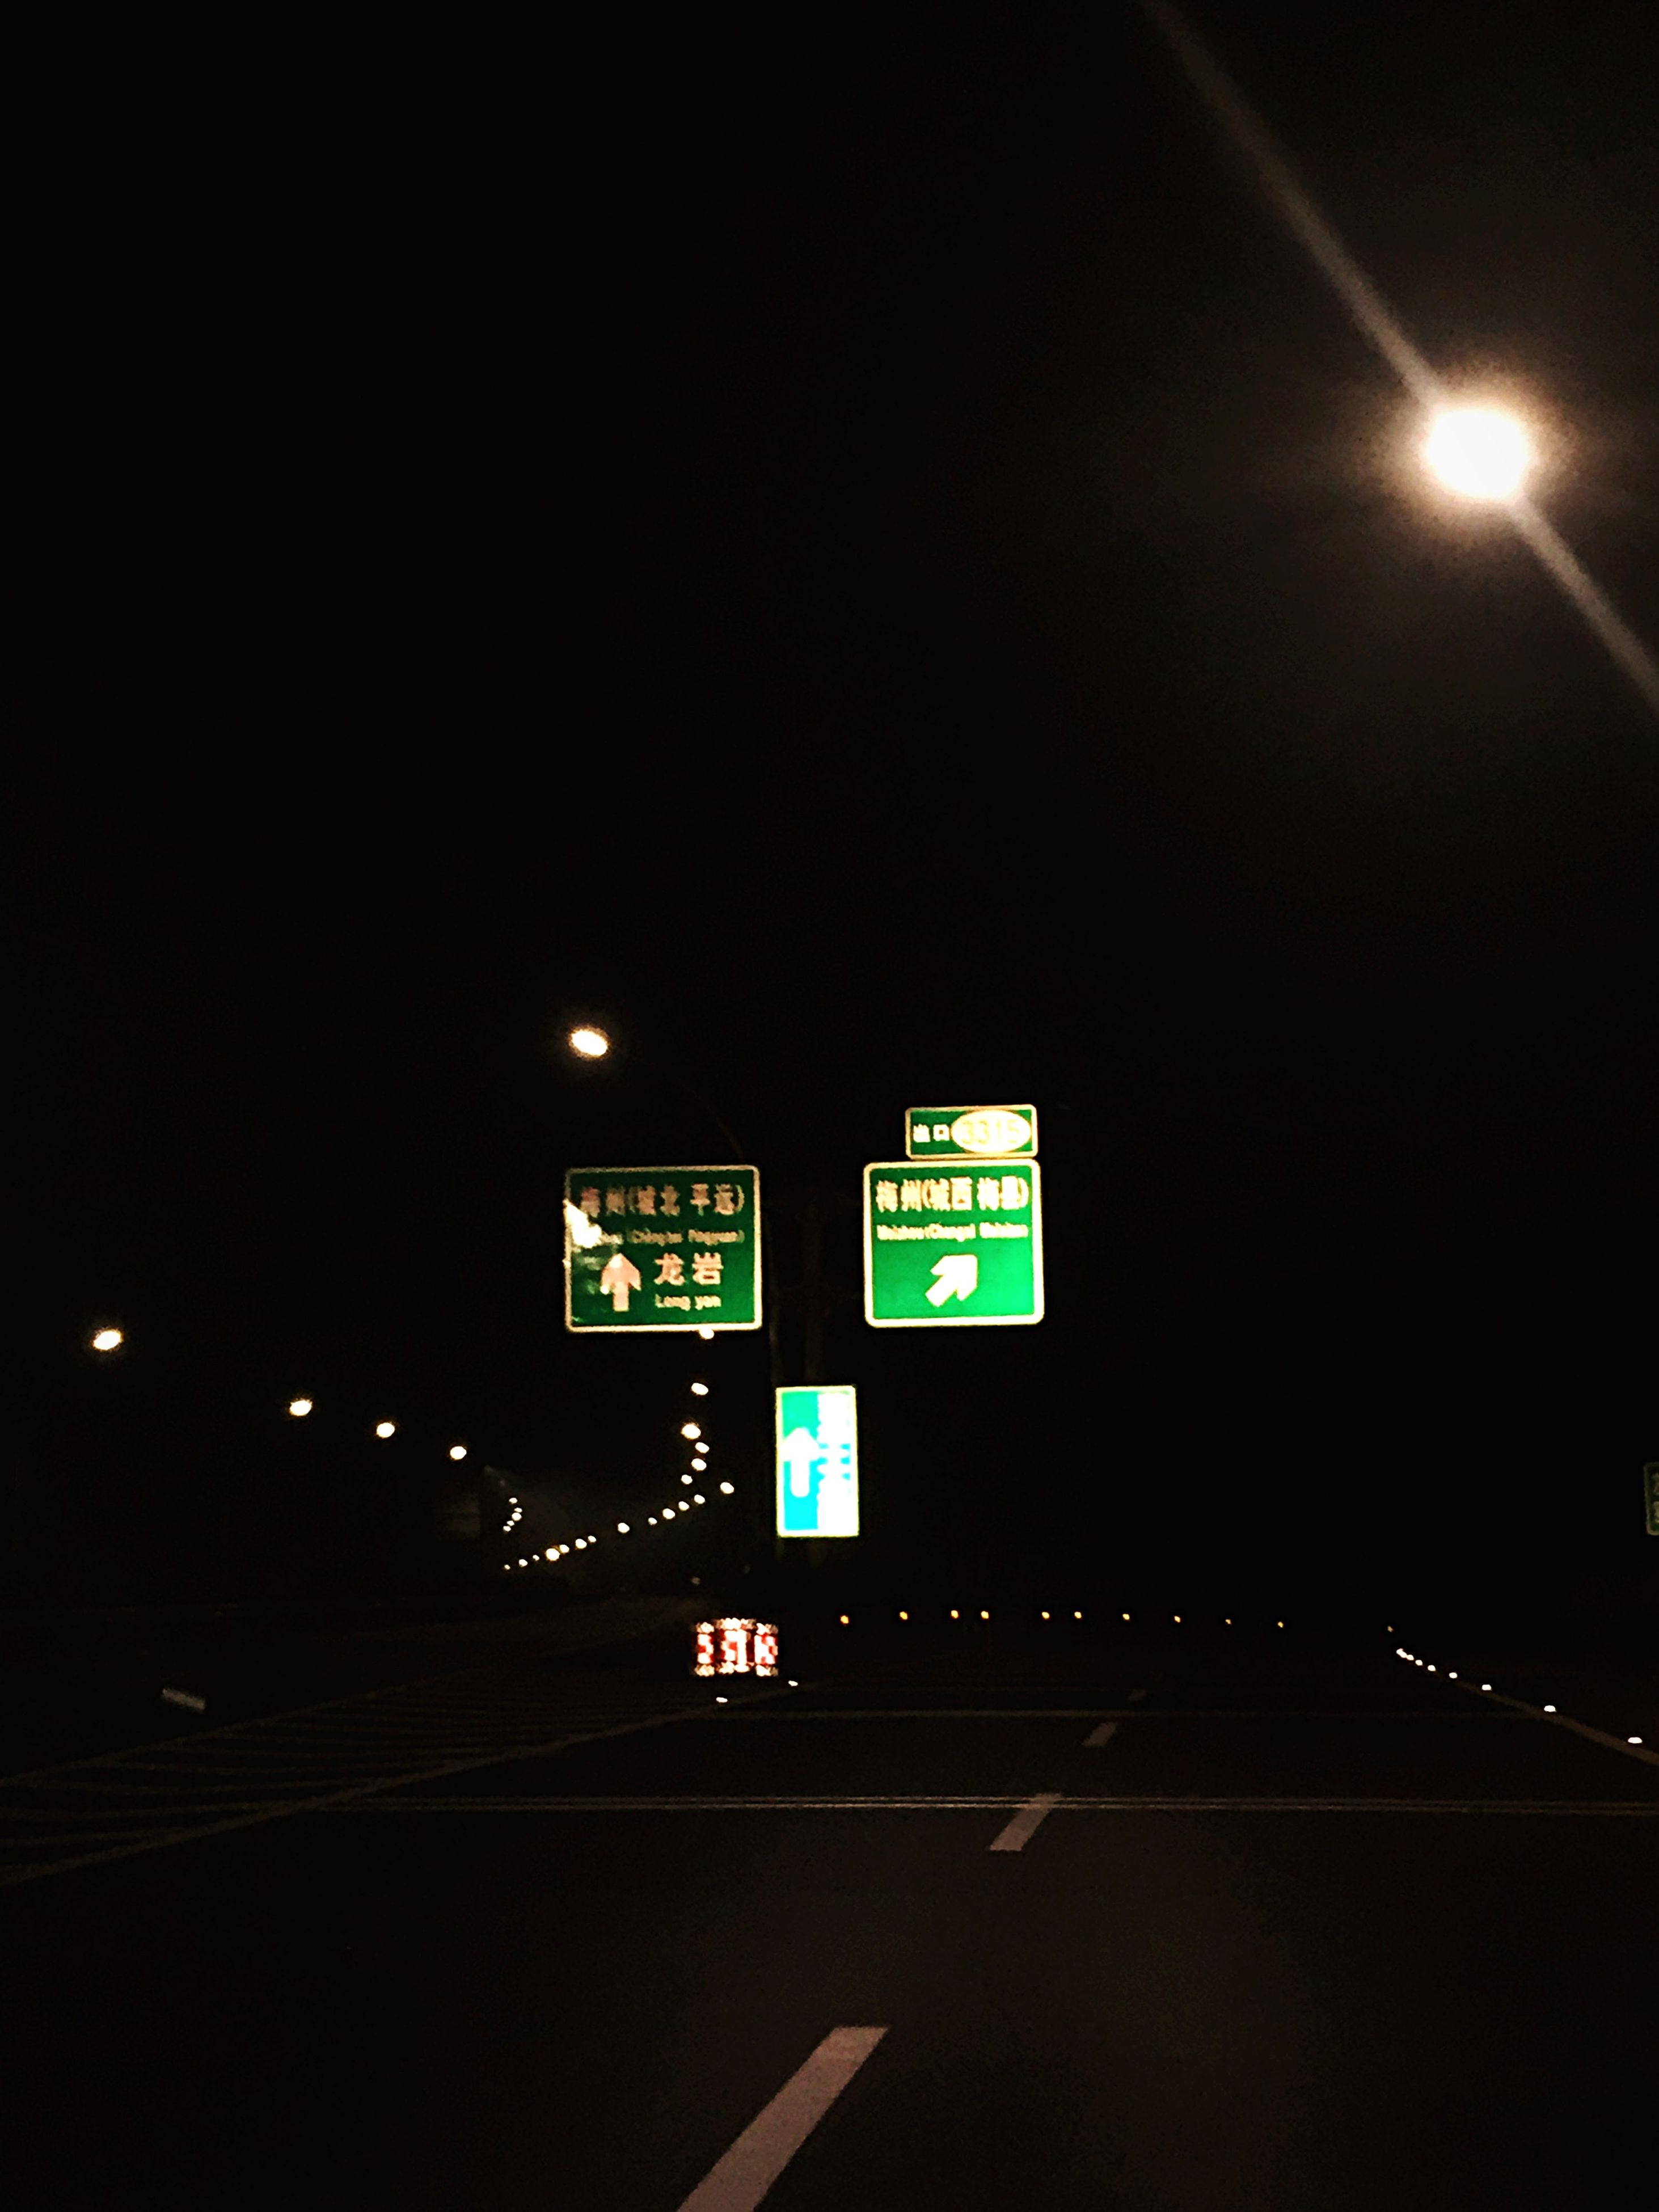 illuminated, night, communication, text, western script, guidance, information sign, arrow symbol, sign, transportation, directional sign, information, clear sky, road sign, road, direction, copy space, number, capital letter, lighting equipment